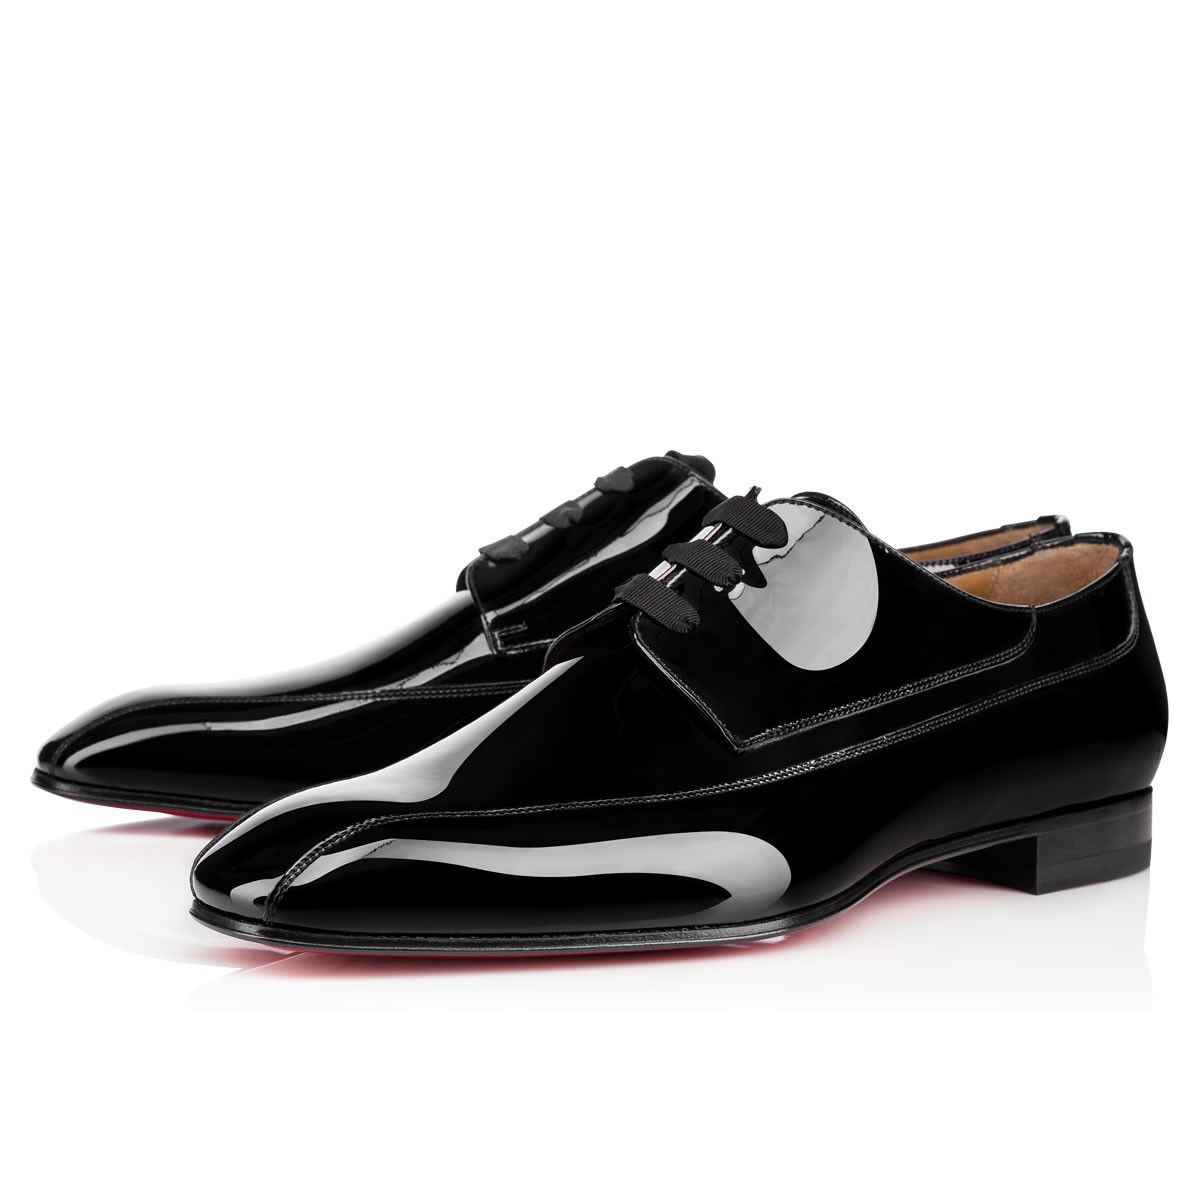 7635483684c CHRISTIAN LOUBOUTIN Orleaness Flat Black Patent Leather - Men Shoes - Christian  Louboutin.  christianlouboutin  shoes